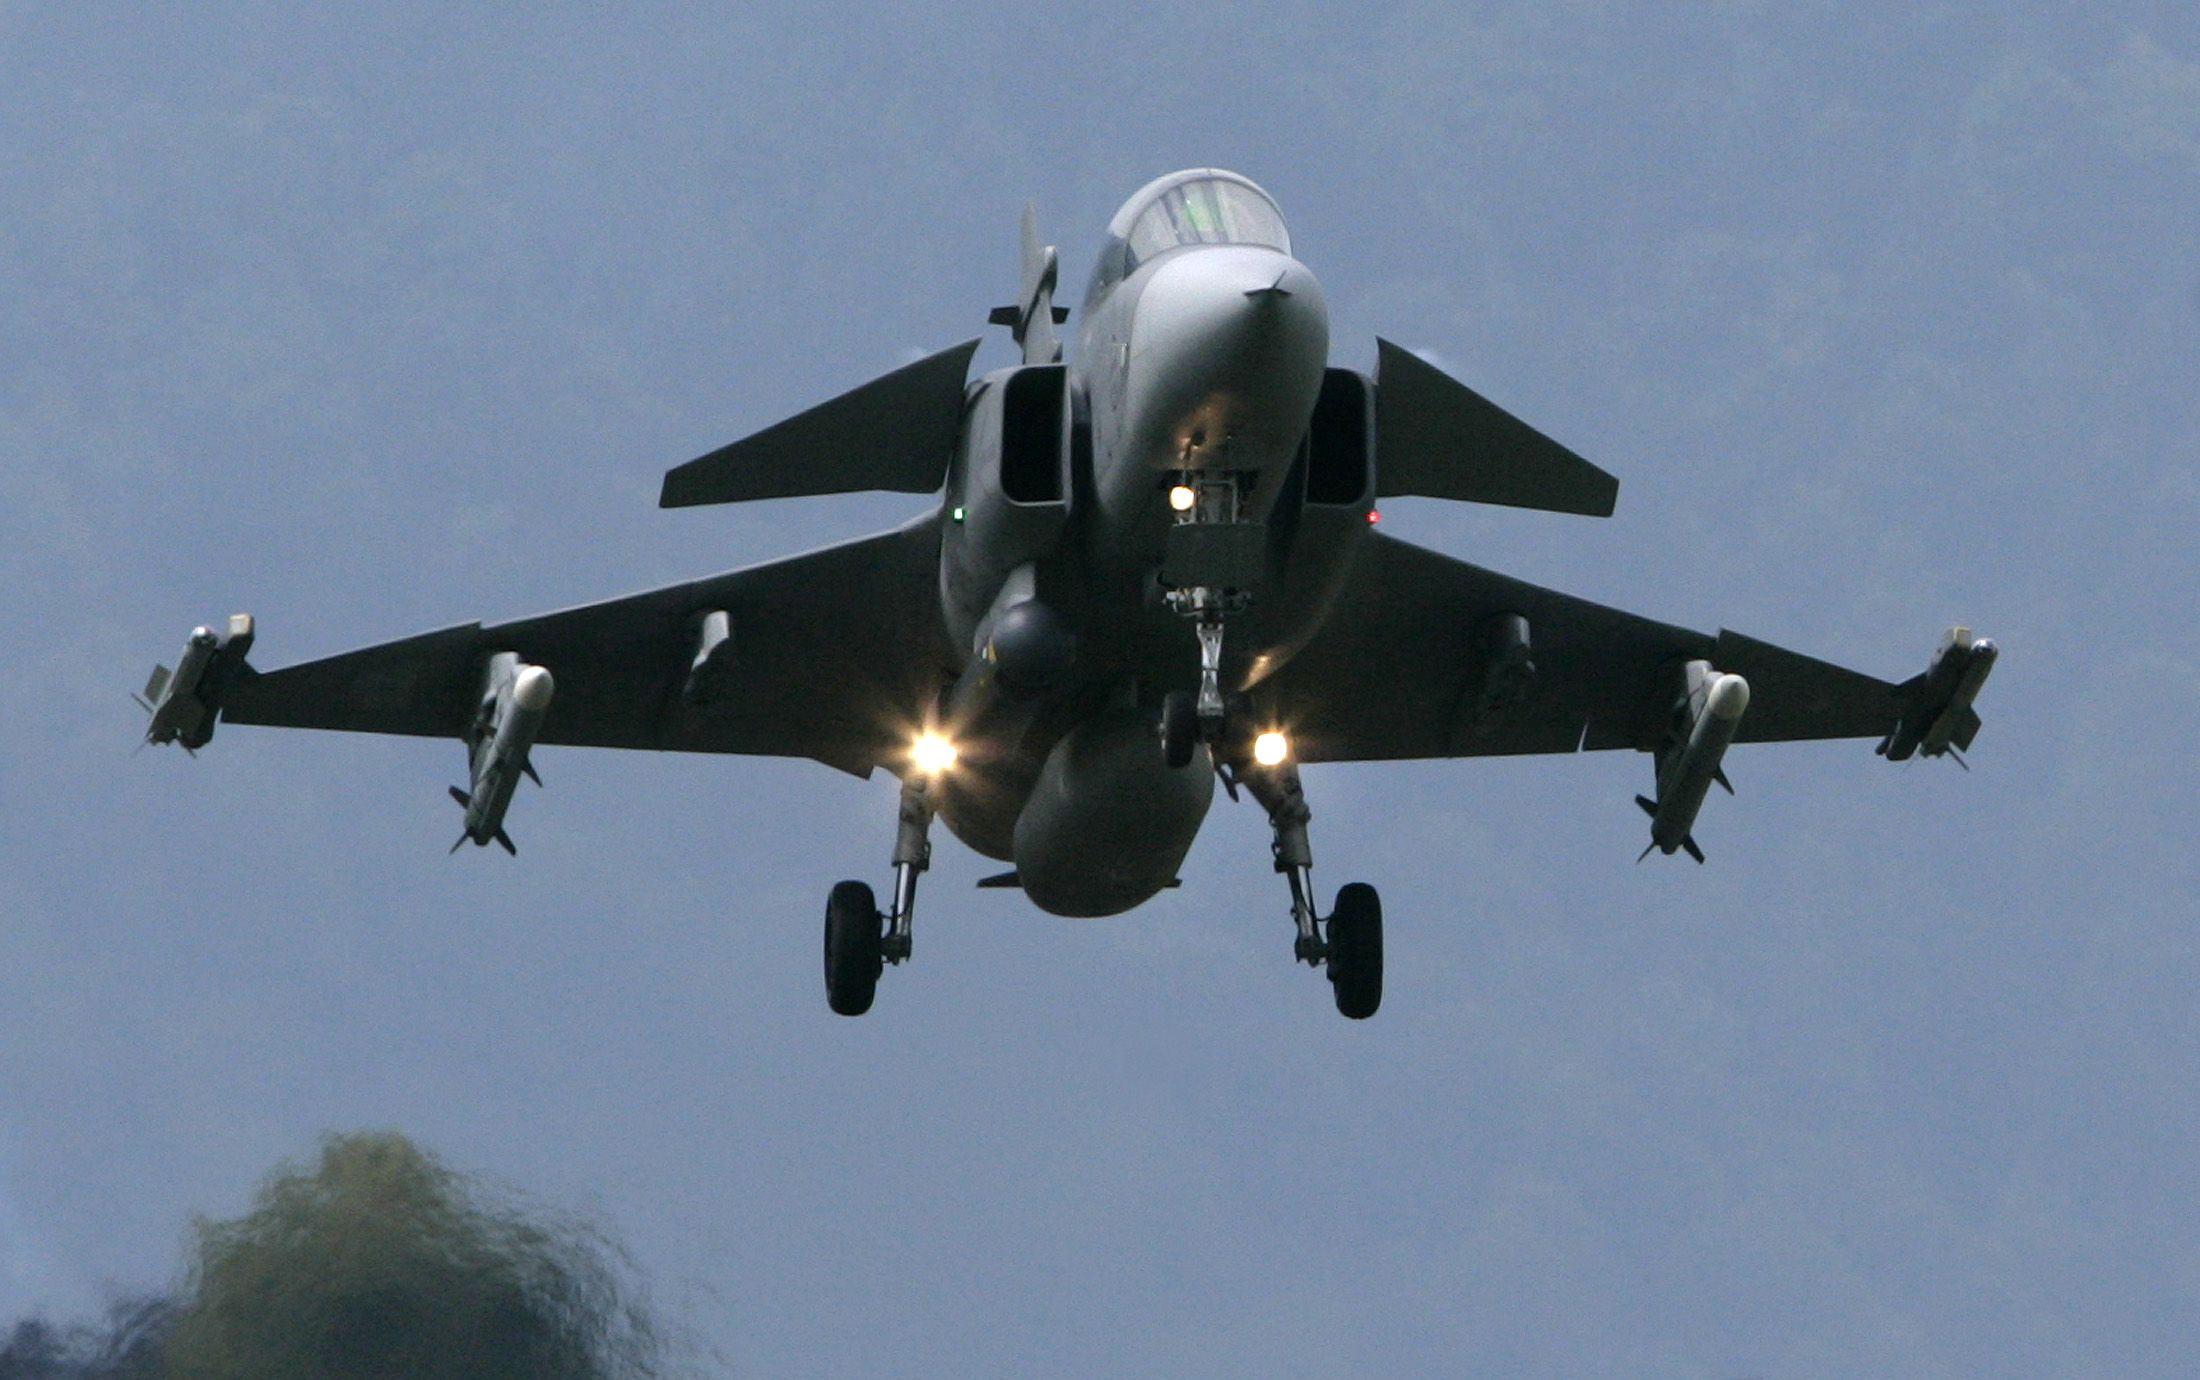 Swedish fighter jet lands at Swiss airbase